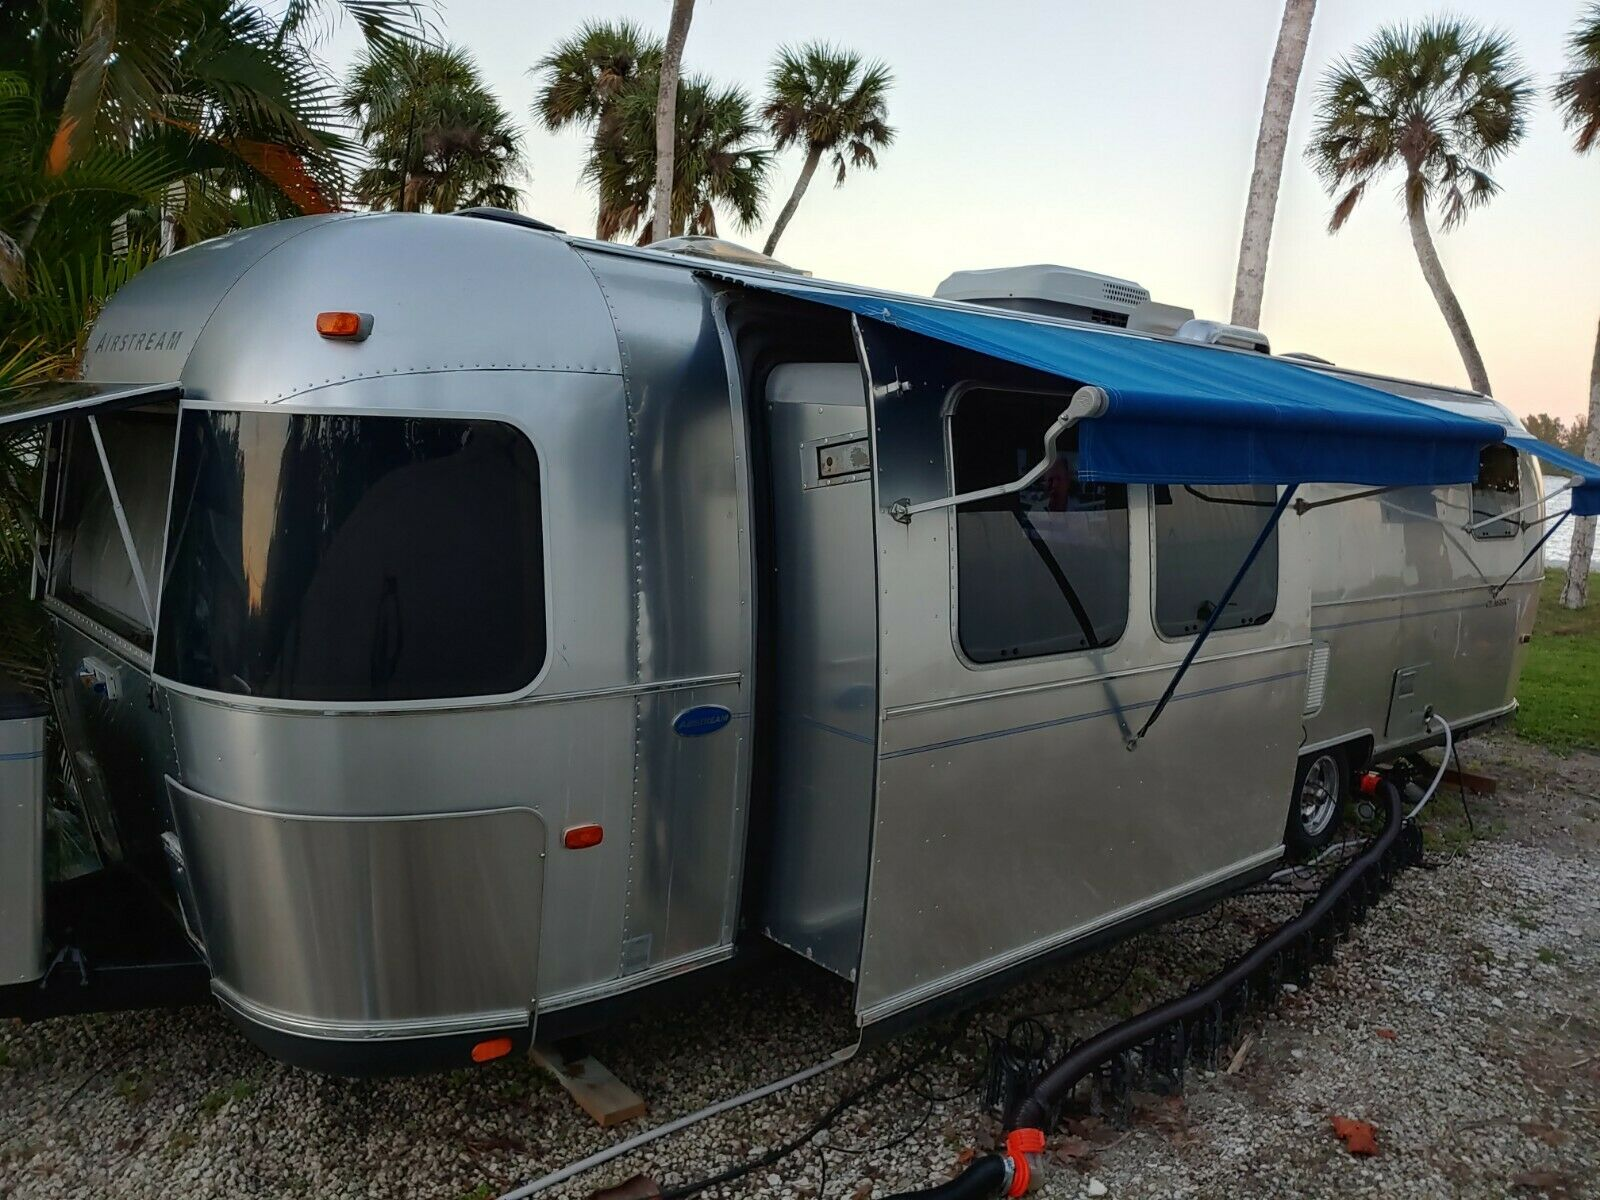 beautiful 2003 Airstream Classic trailer camper for sale